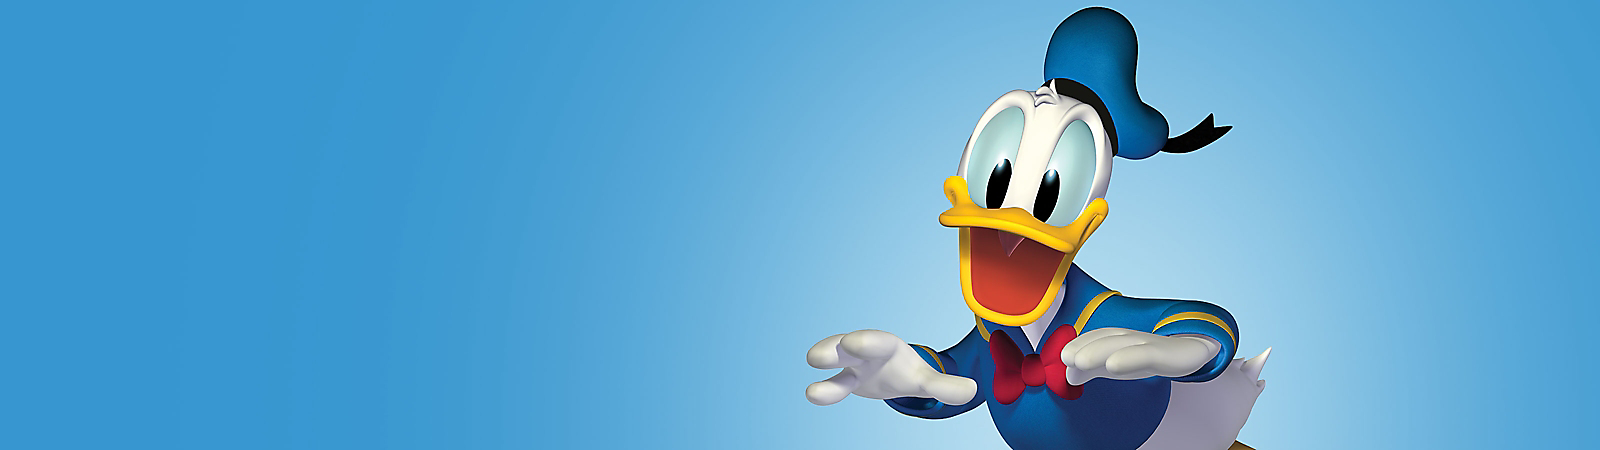 Background image of Donald Duck